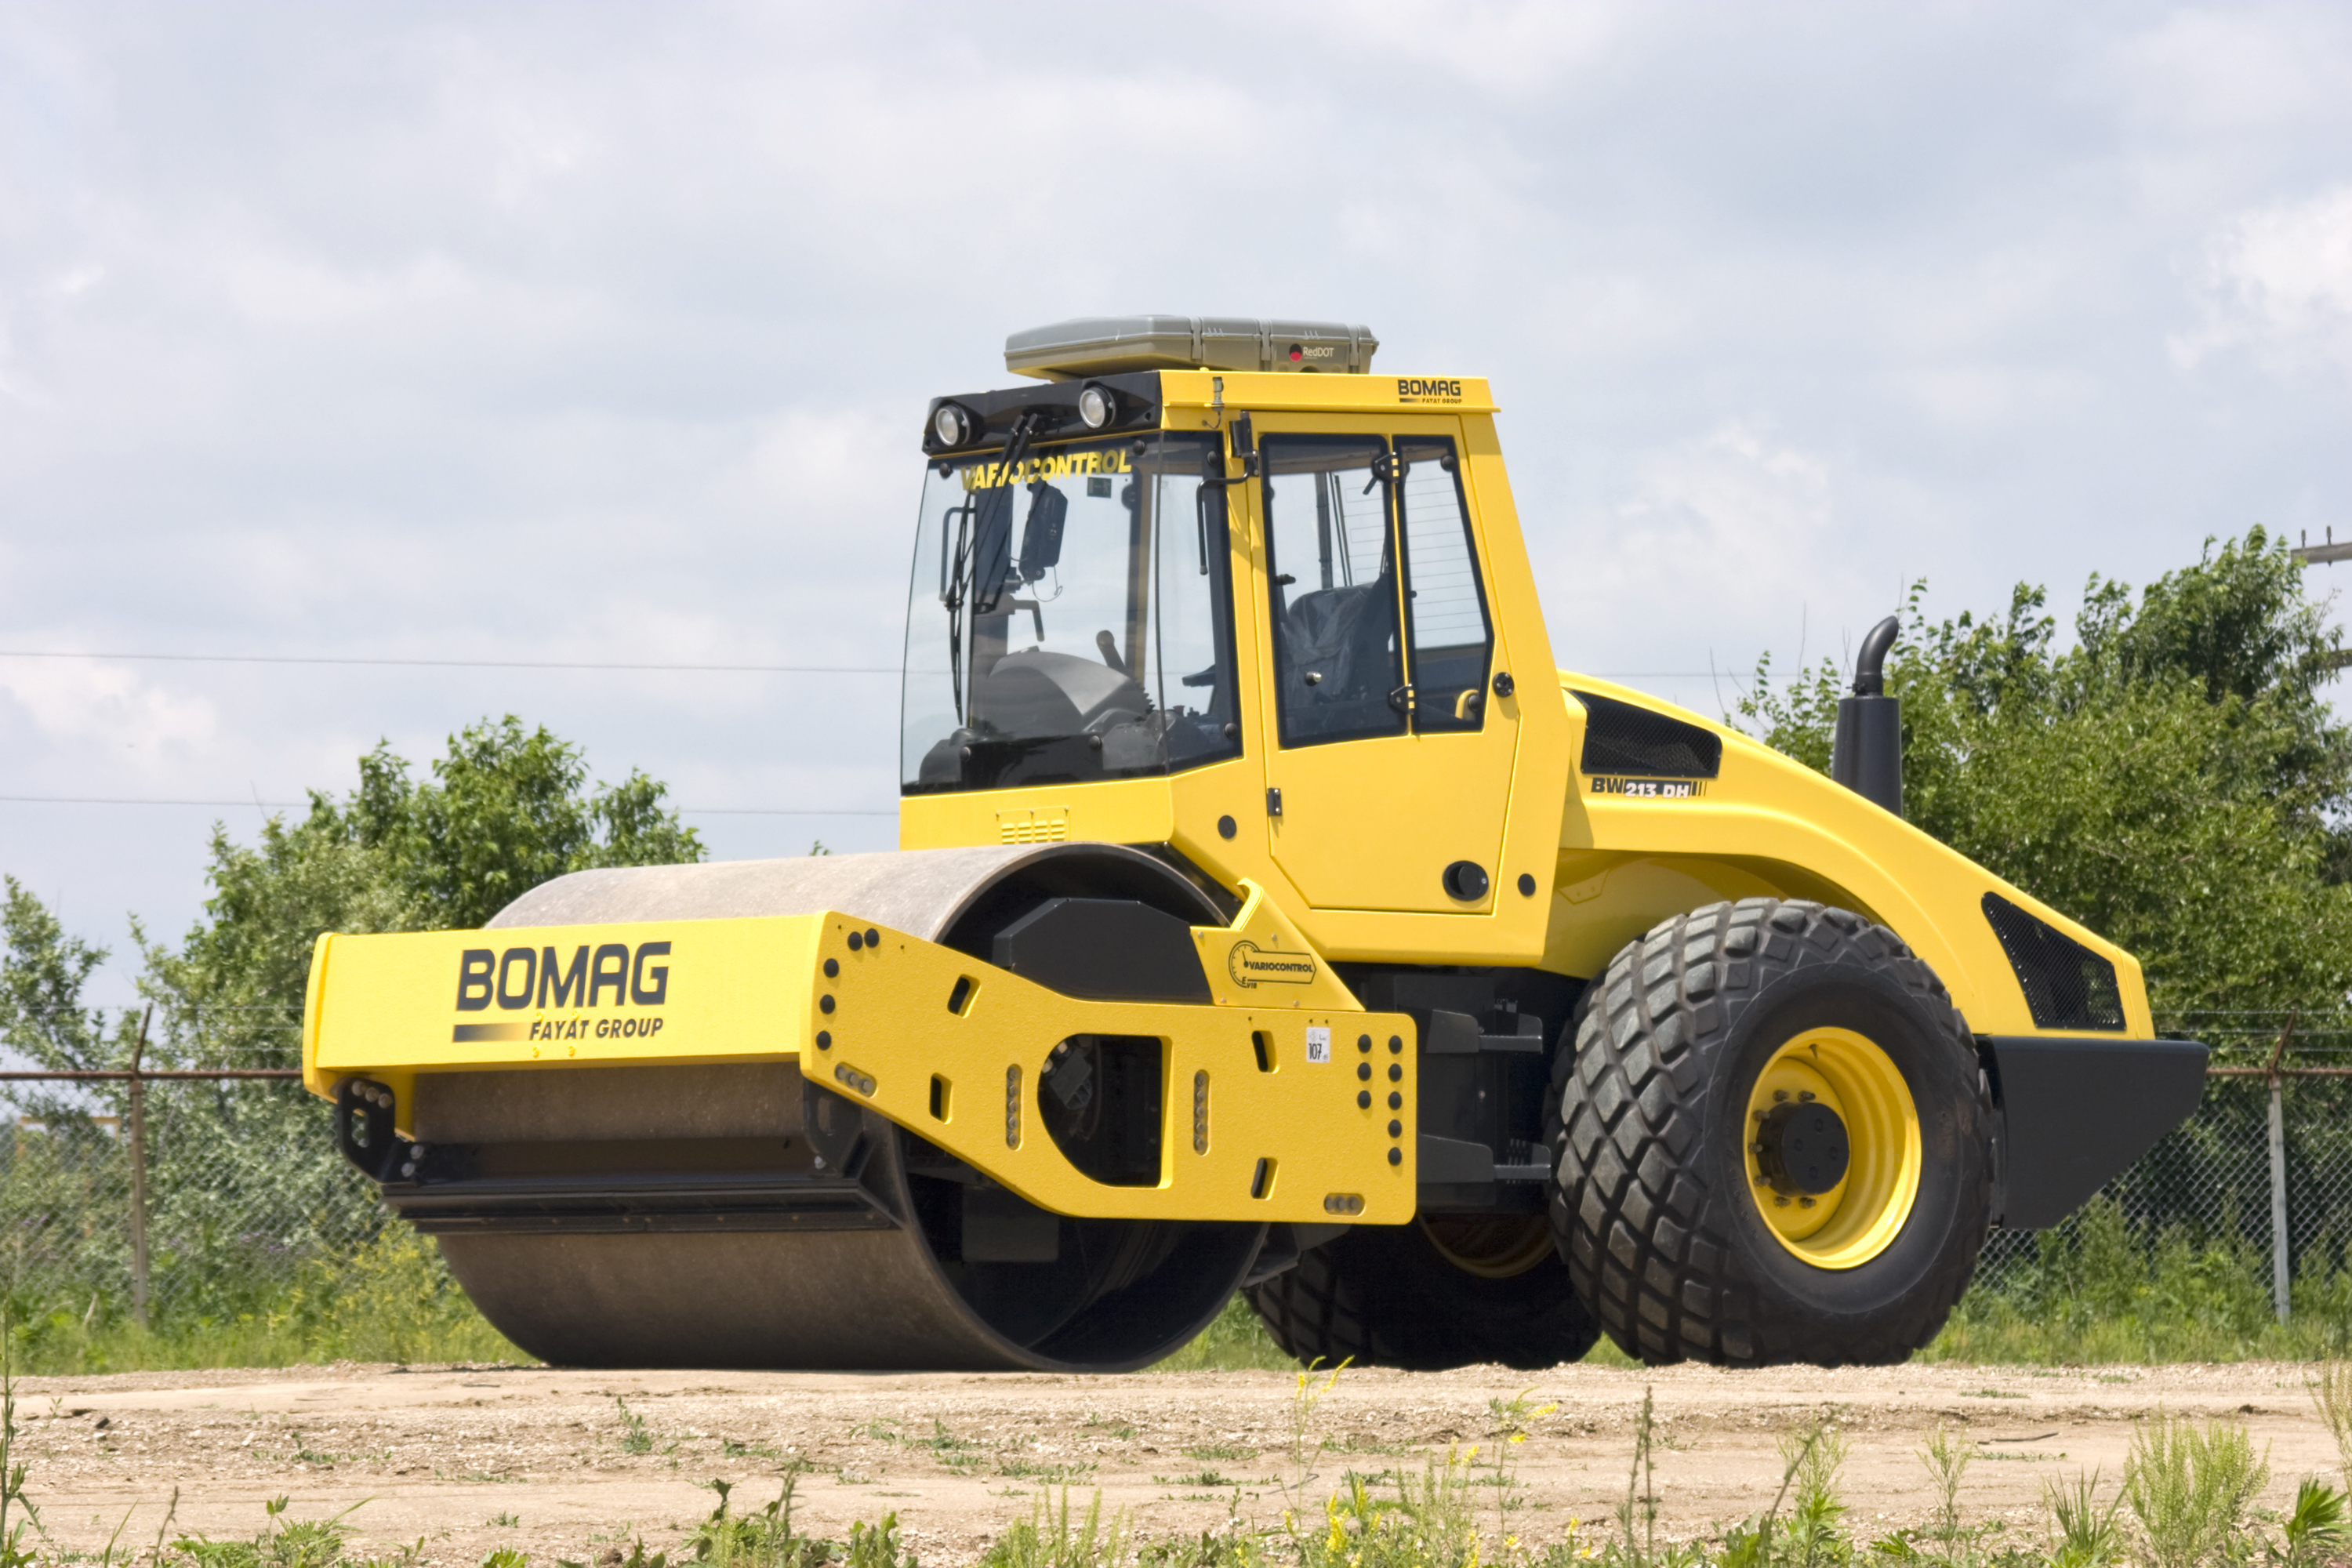 Types of Soil Compaction Machines for Rent or for Sale in SK